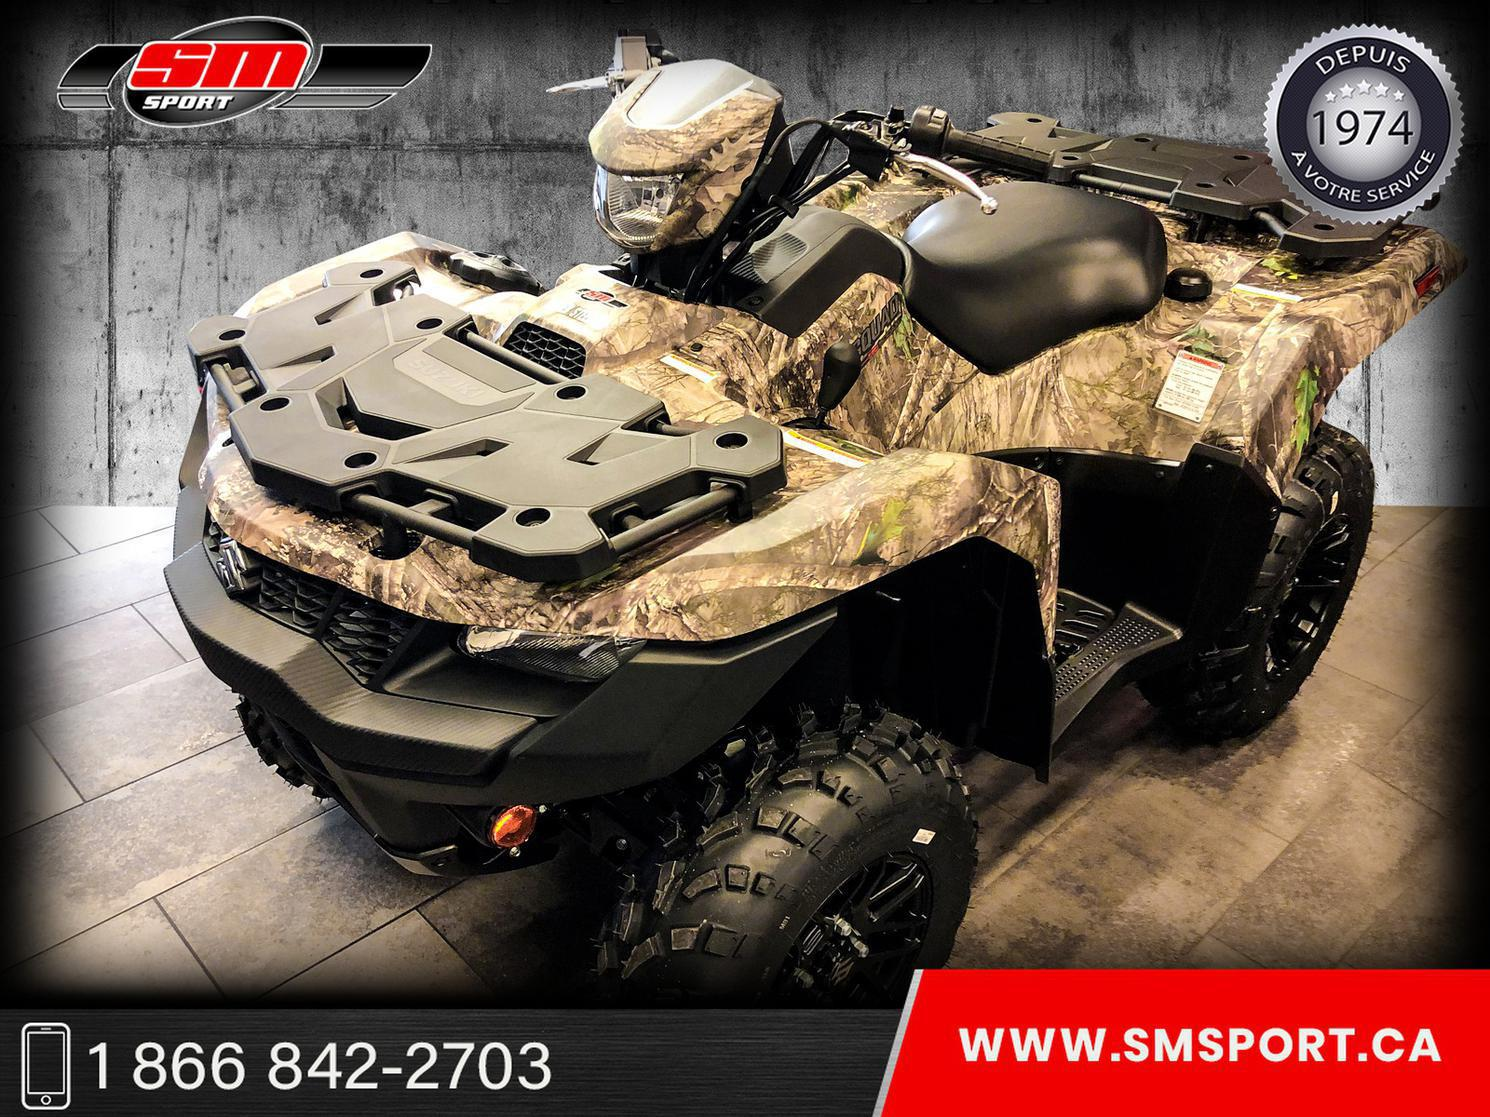 2021 Suzuki LTA 750 KINGQUAD XPZ - NEUF DISPONIBLE EN STOCK